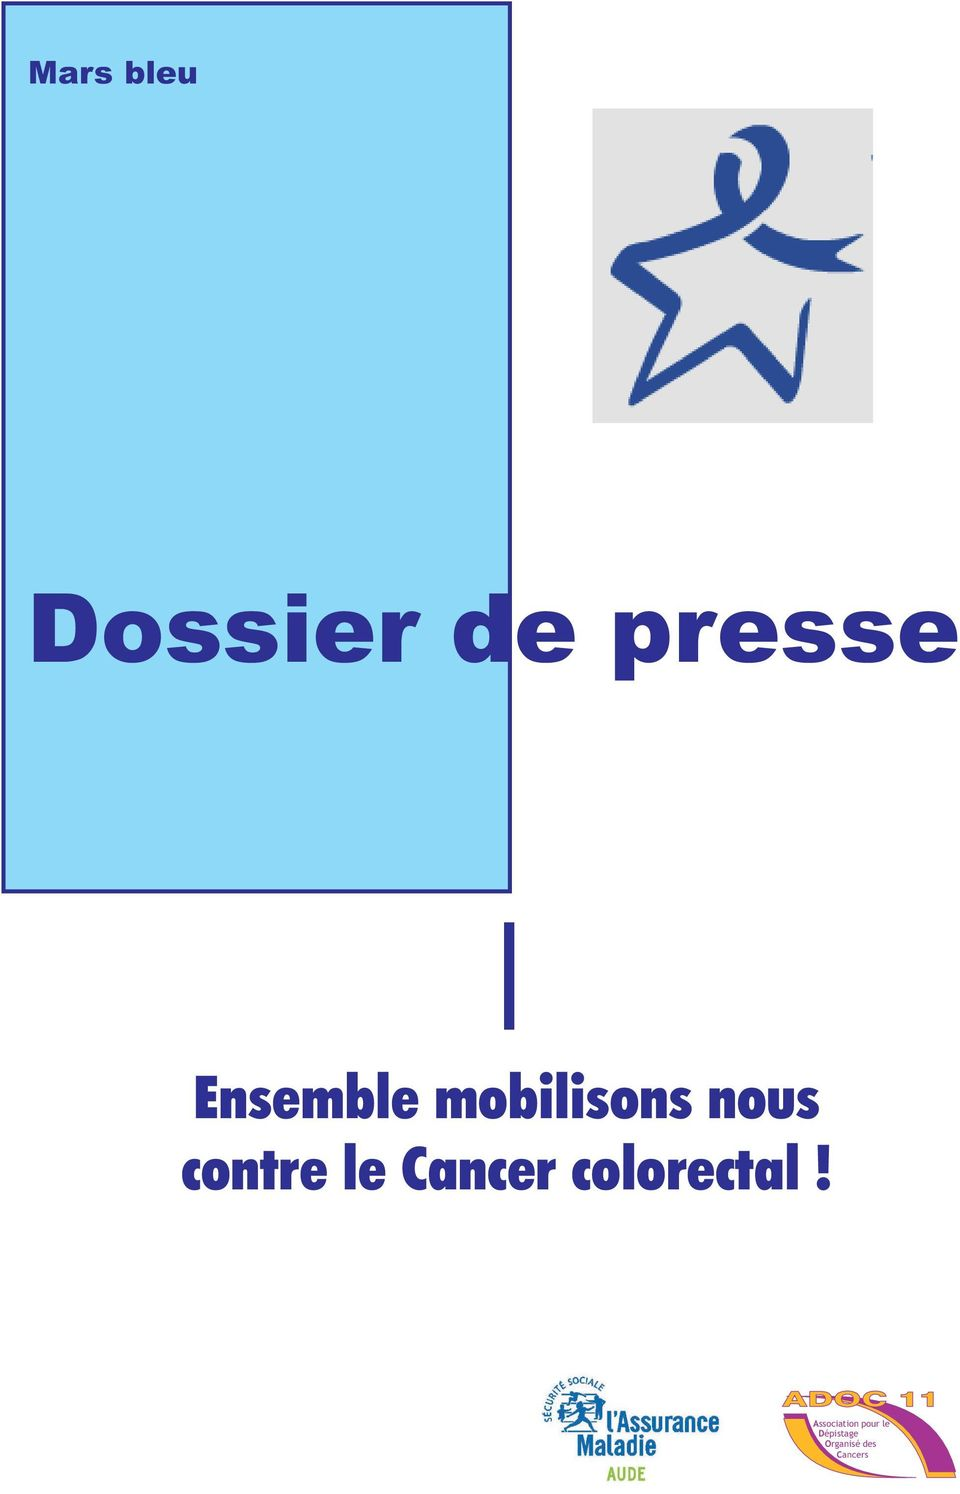 Cancer colorectal!